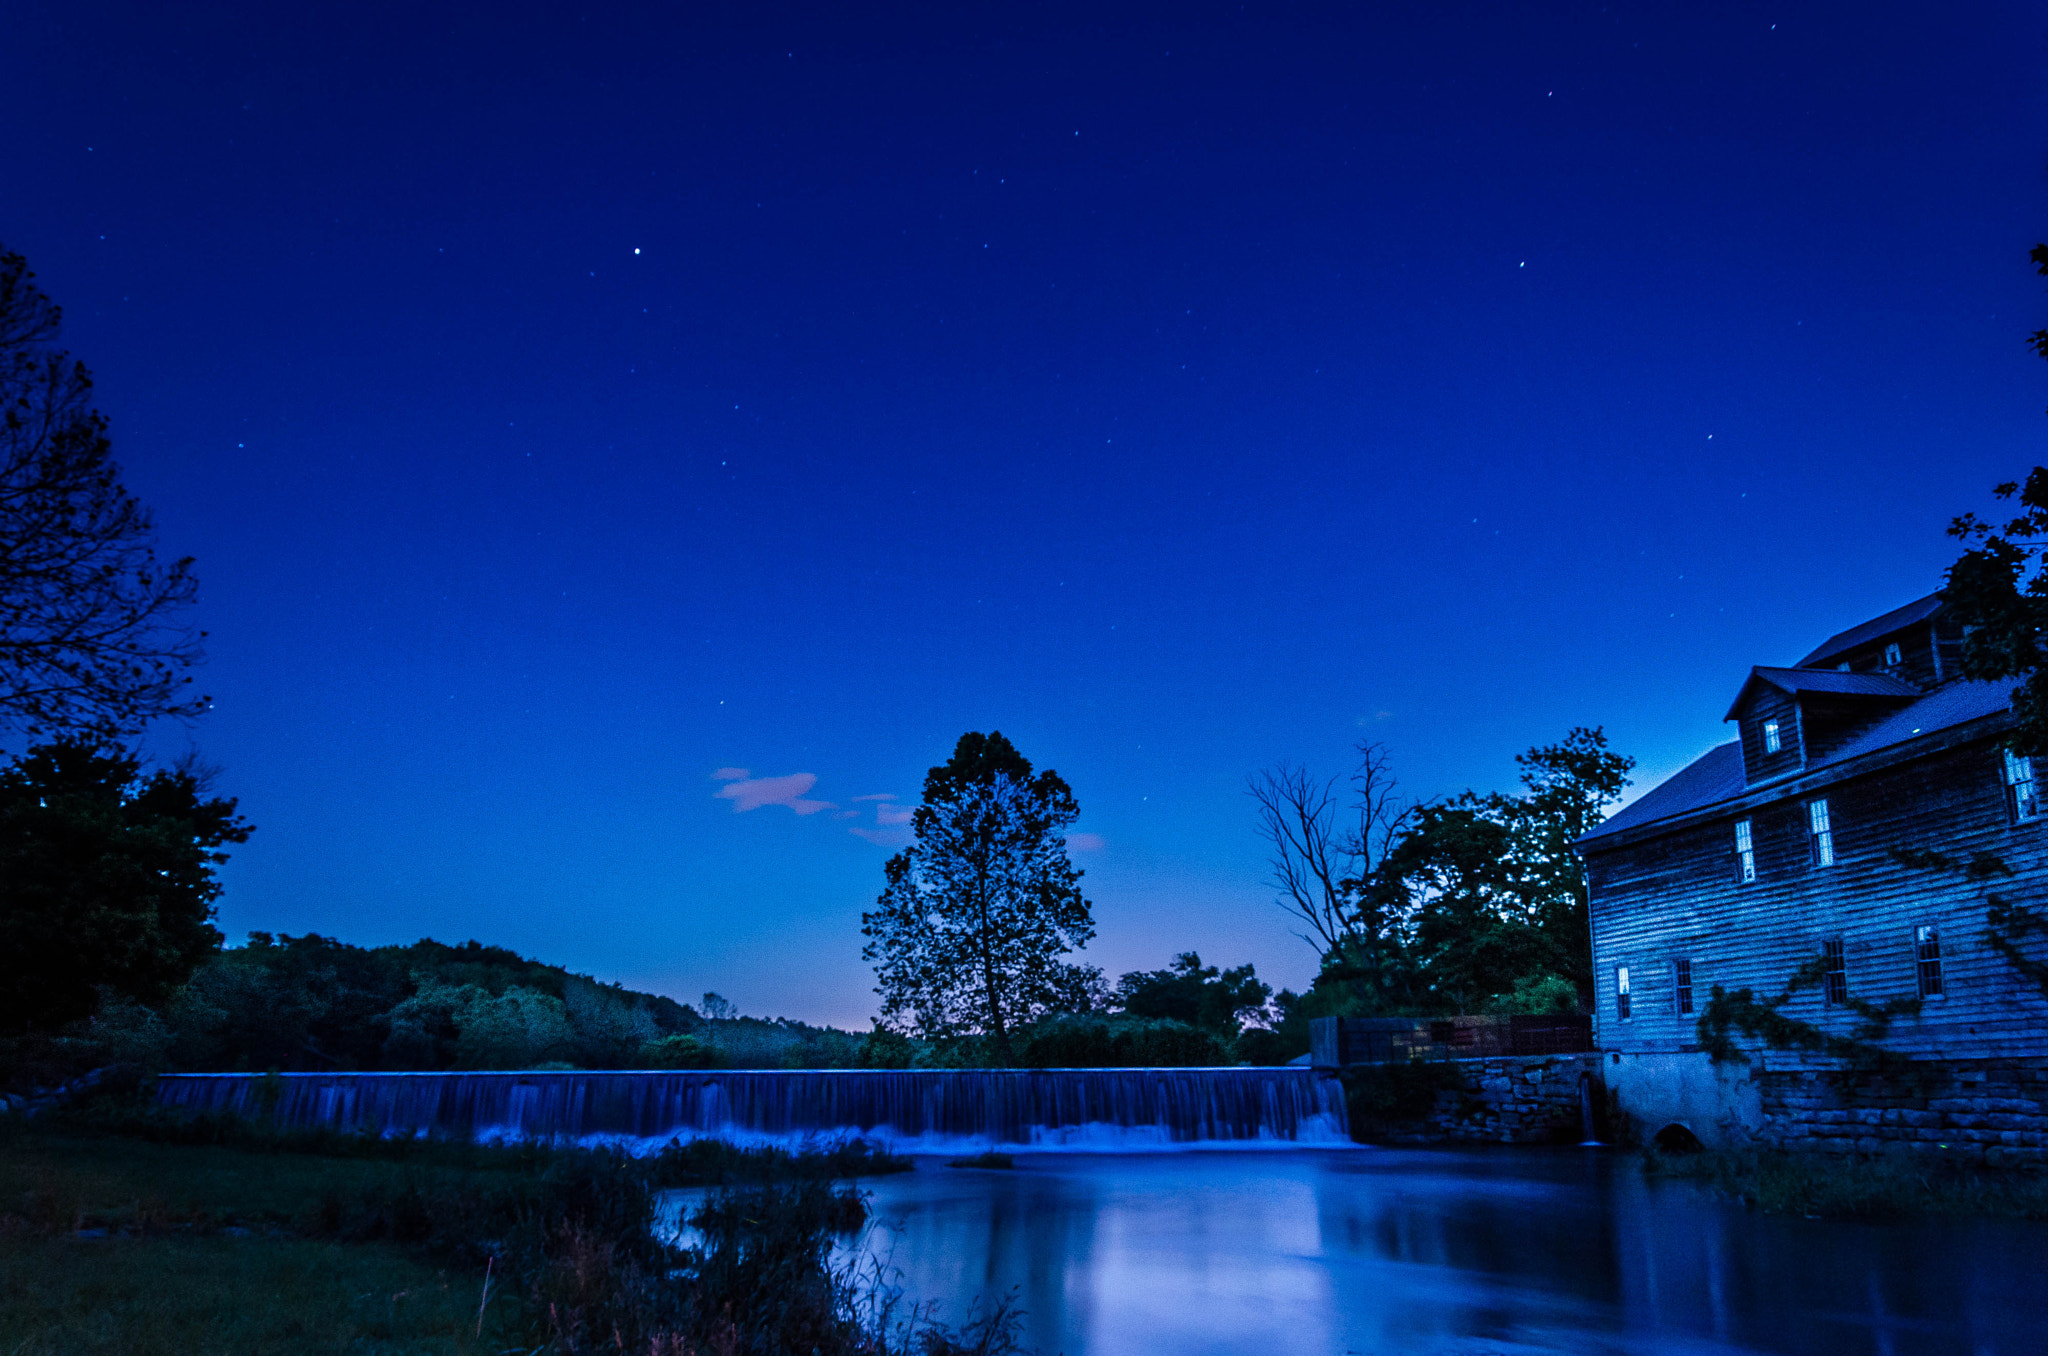 Photograph Nightfall at the Mill by Jerry Dean on 500px